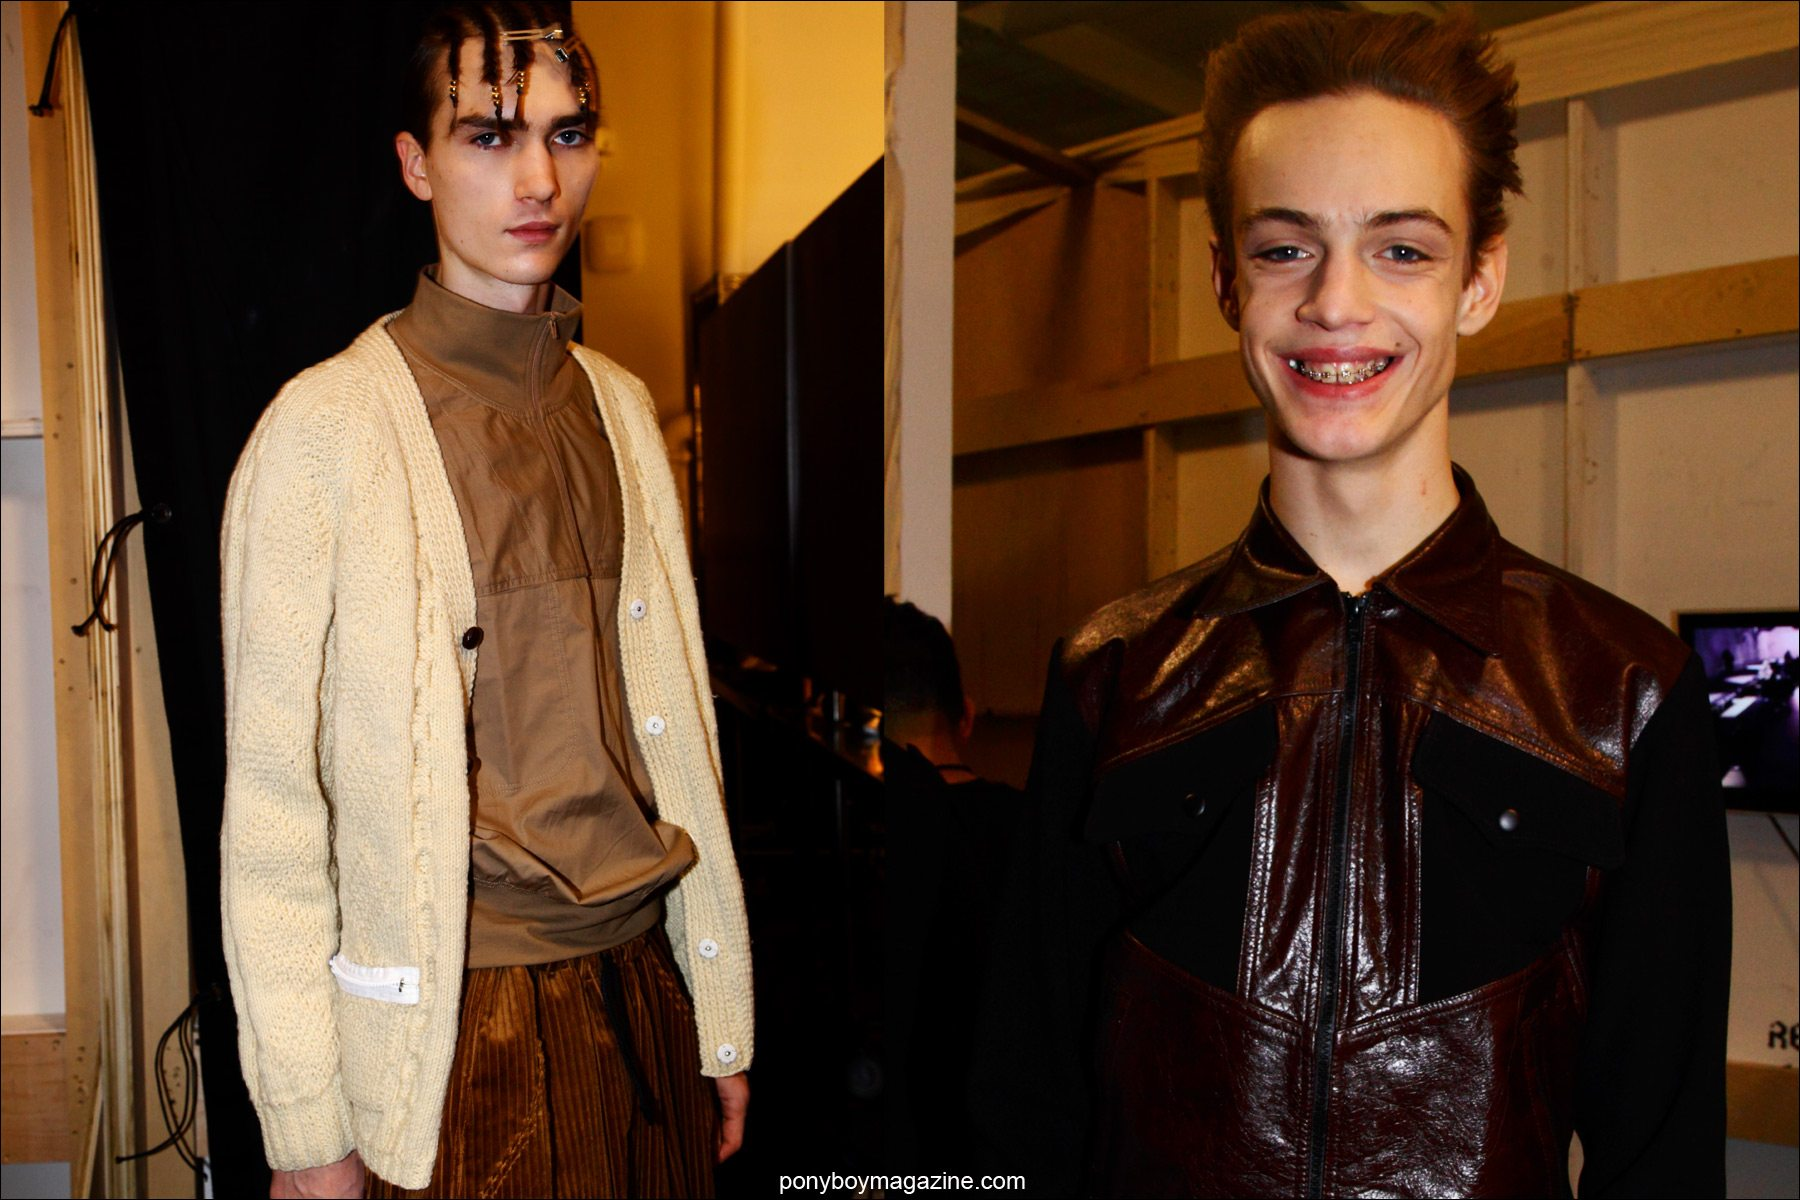 Male models Gryphon O'Shea and Charlie James photographed by Alexander Thompson for Ponyboy magazine, backstage at Martin Keehn F/W15 show.